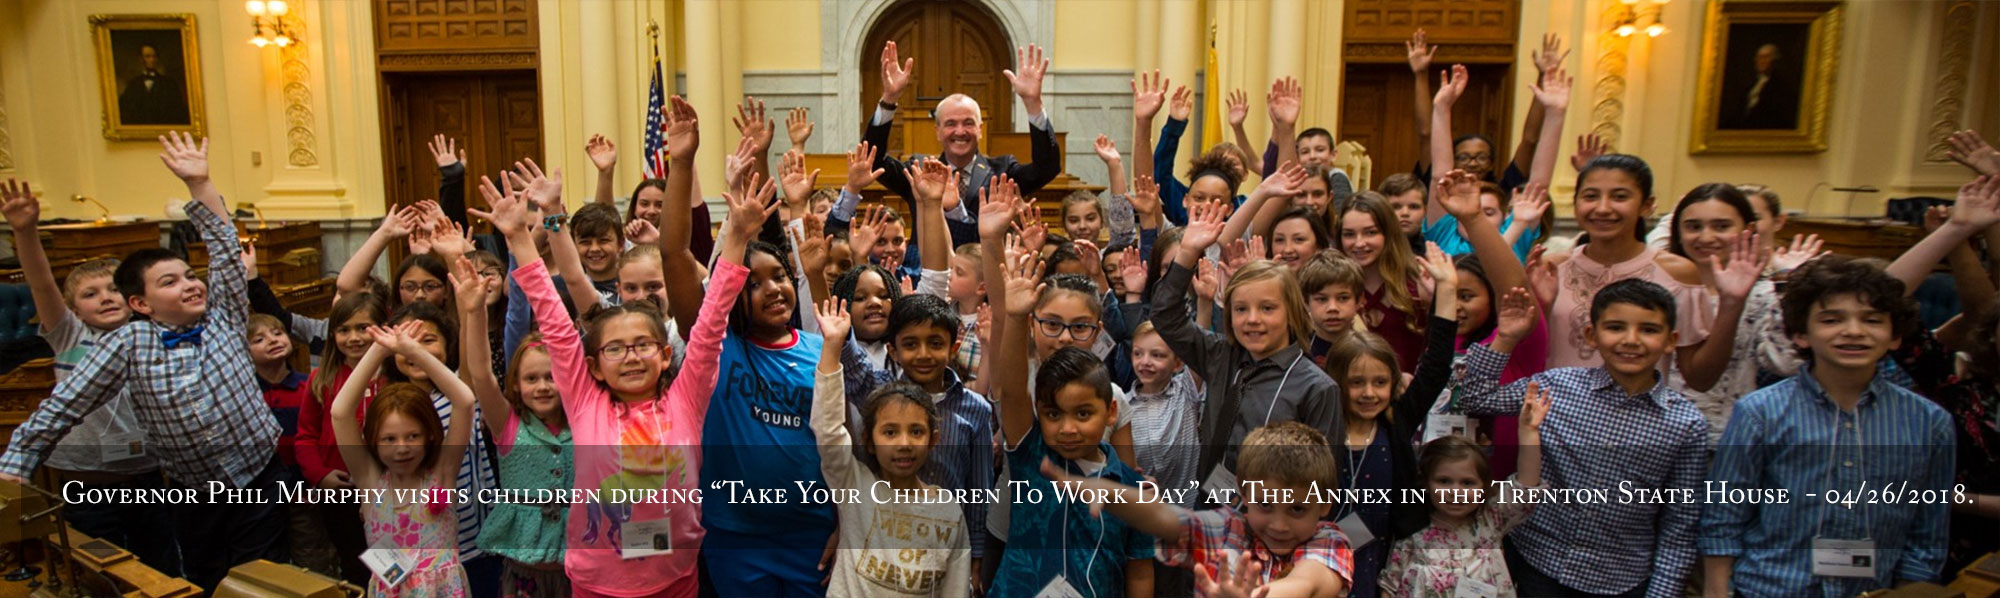 "Governor Phil Murphy visits children during ""Take Your Children To Work Day"" at The Annex in the Trenton State House on Thursday, April 26, 2018"